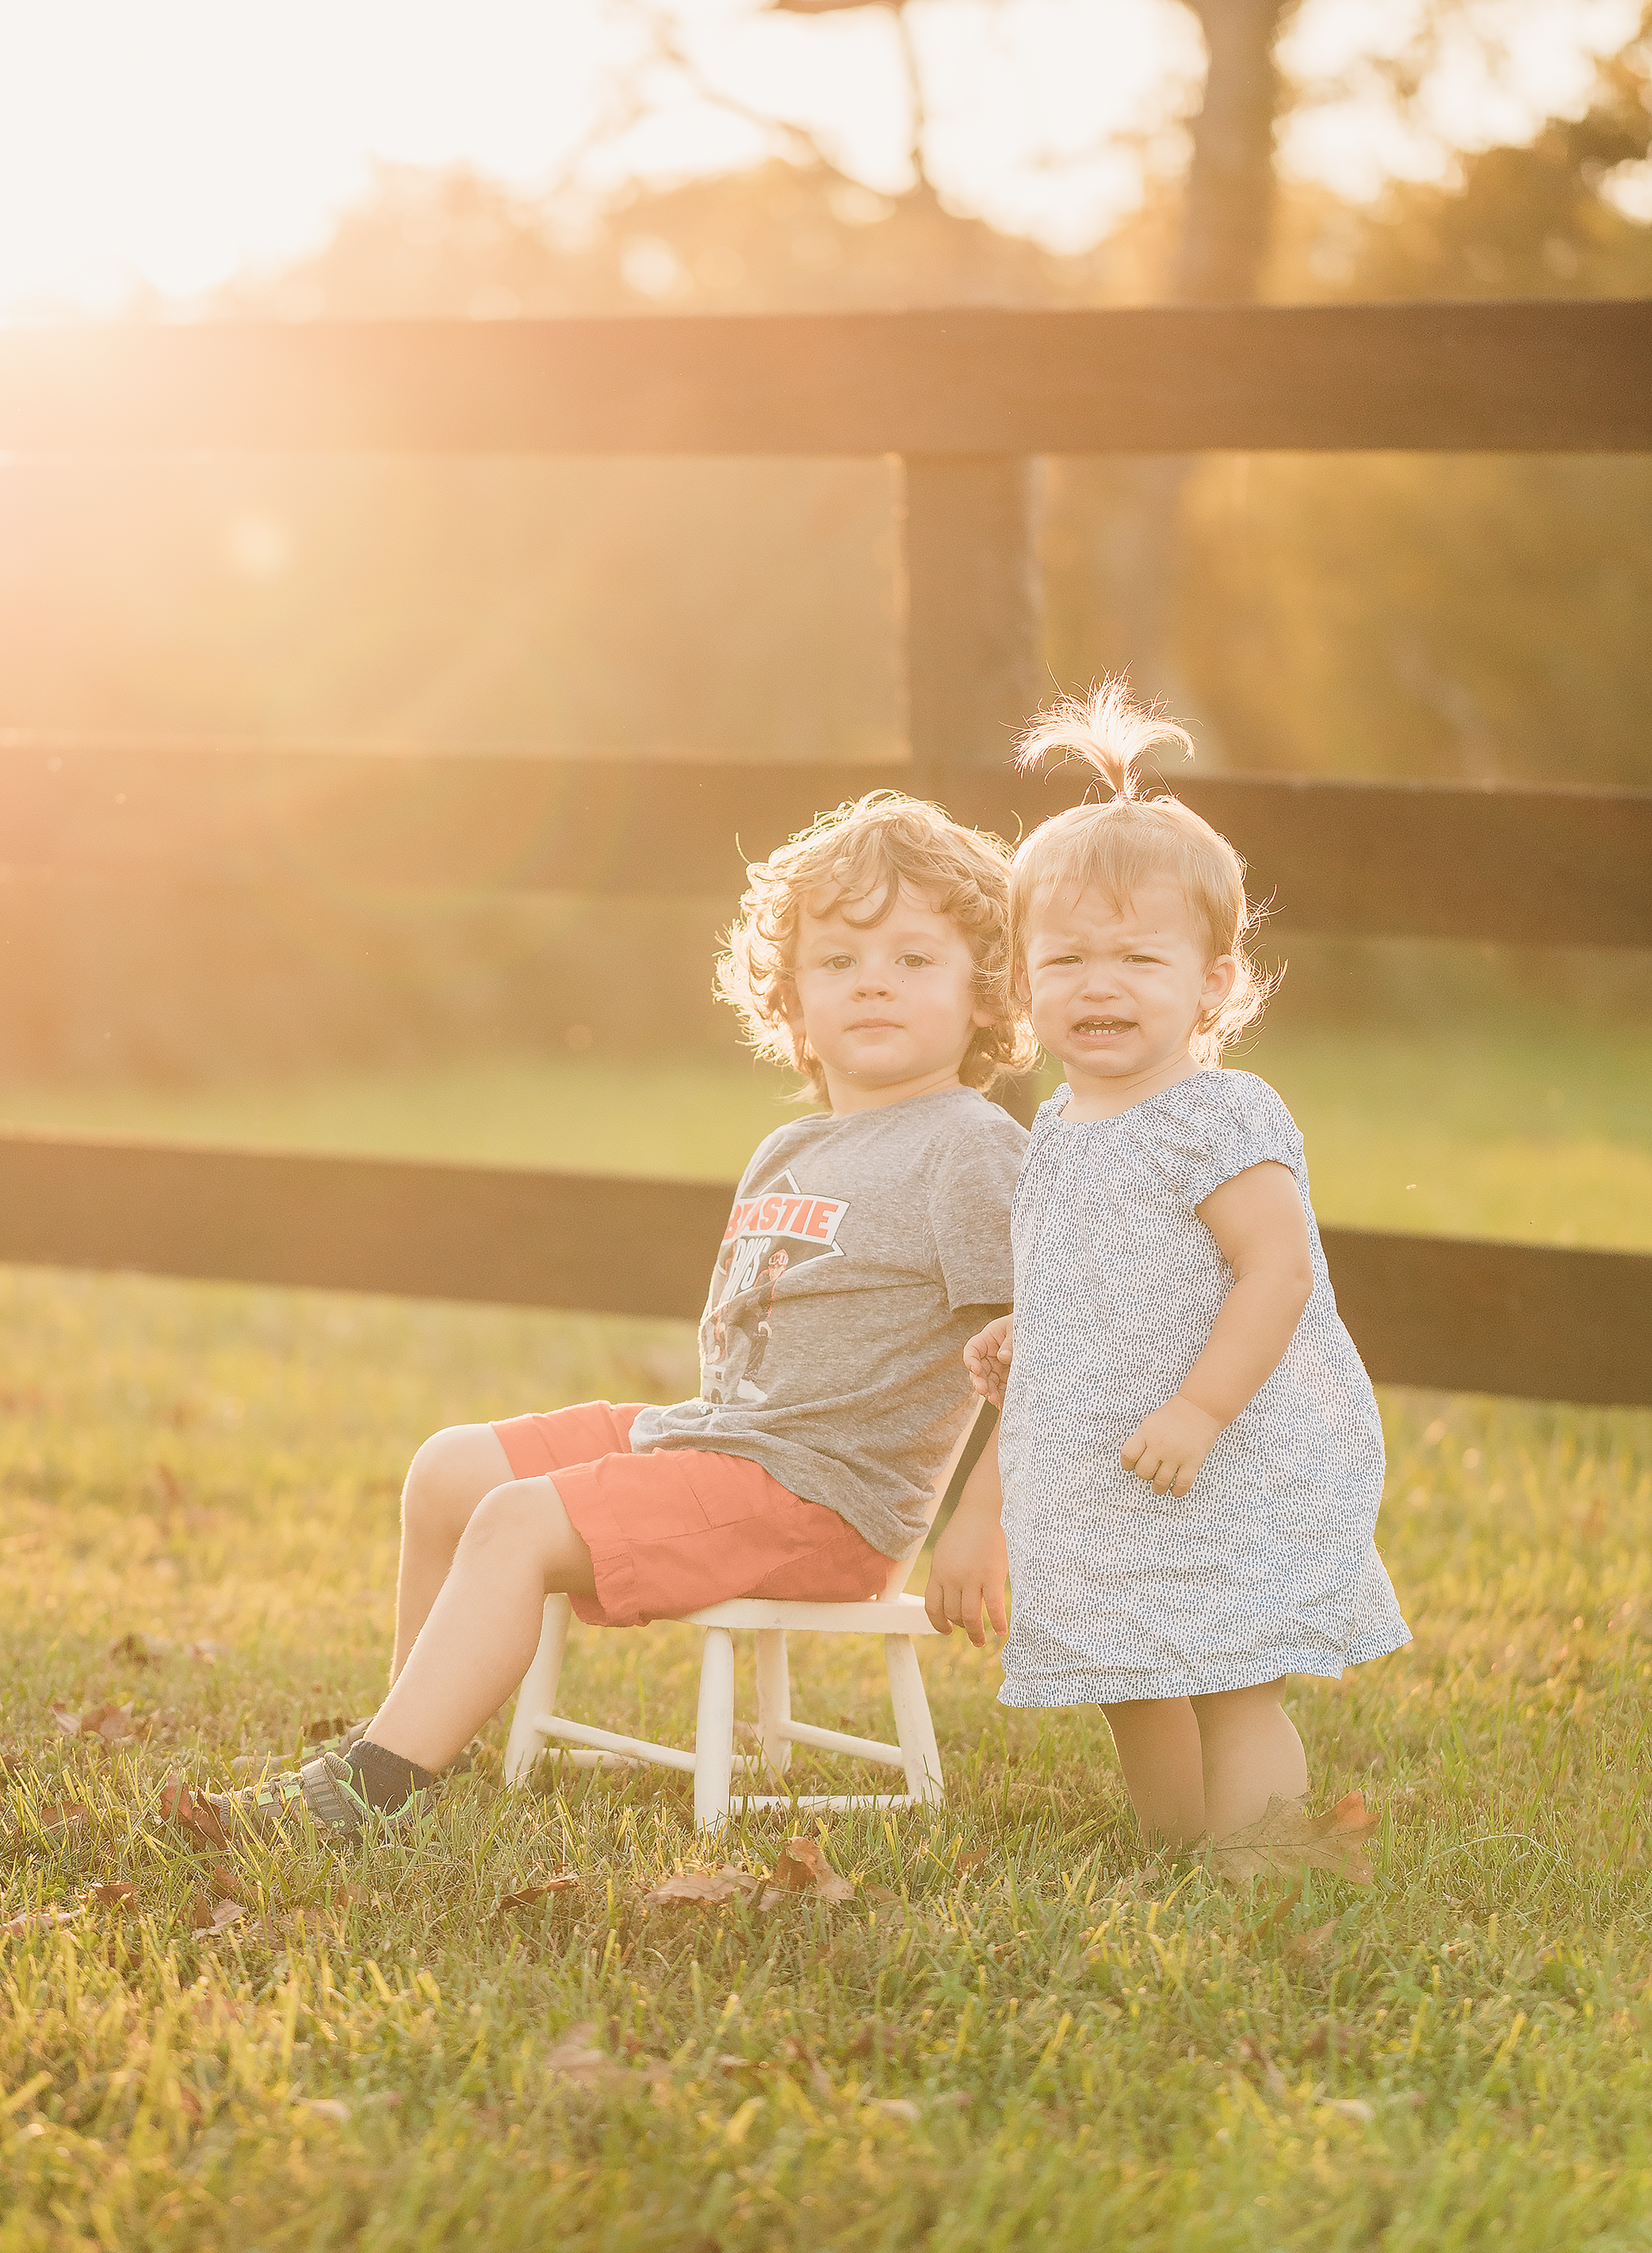 I took the kiddos here to check out the light, play some soccer and get some nice images of them. Instead I get this...however, Captures like this absolutely crack me up. Fiona wants her chair back, Jacob looks pretty proud at having stolen it from her.